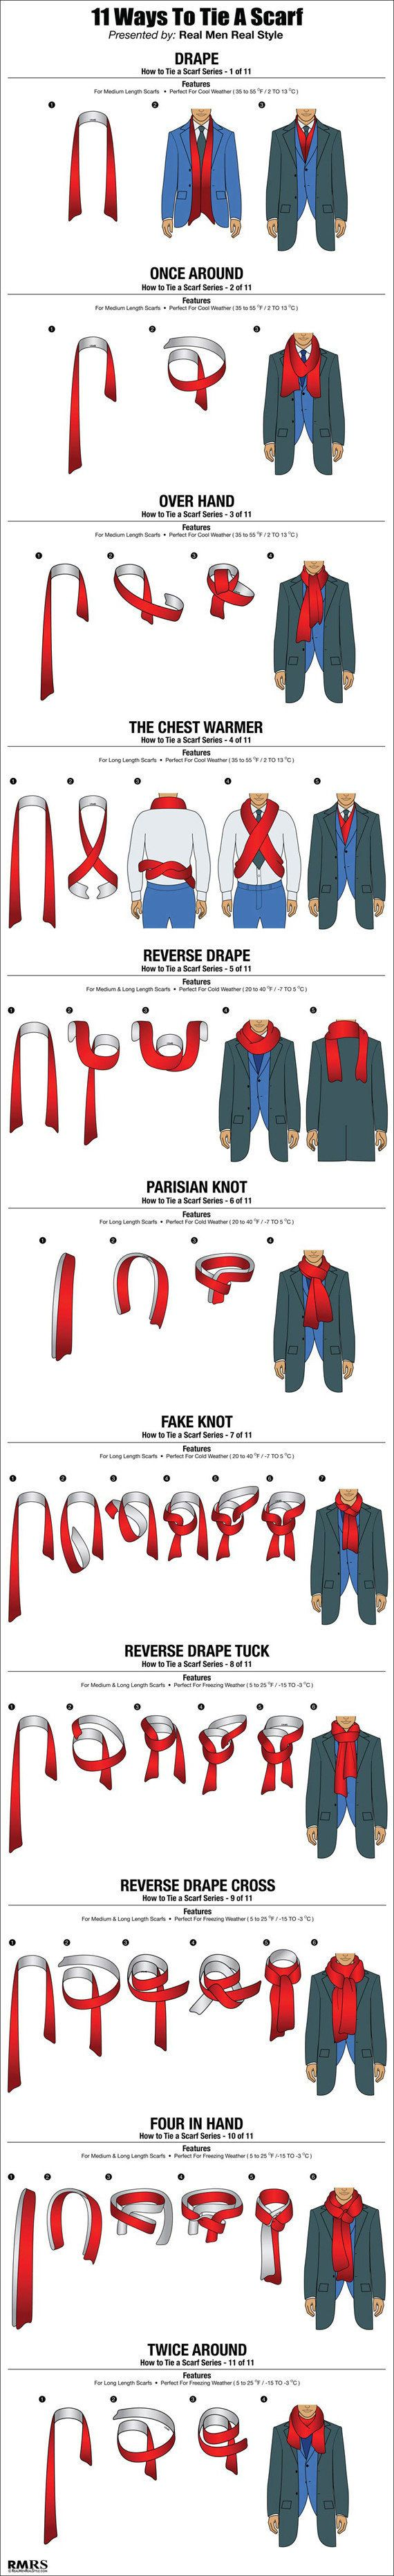 How to tie a guy 97